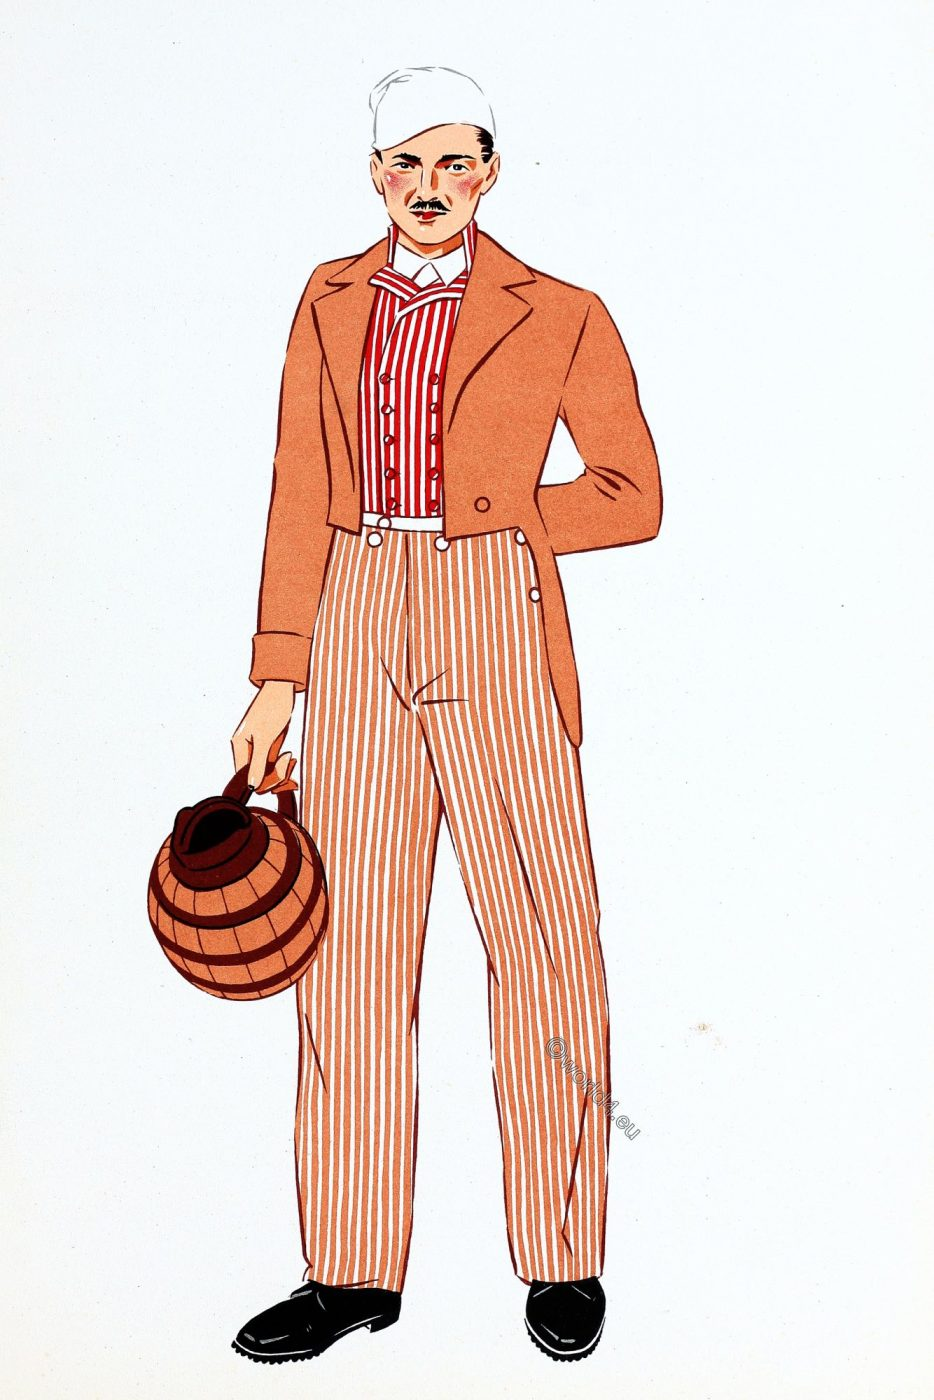 Burgundy, costume, traditional clothing, Man, France